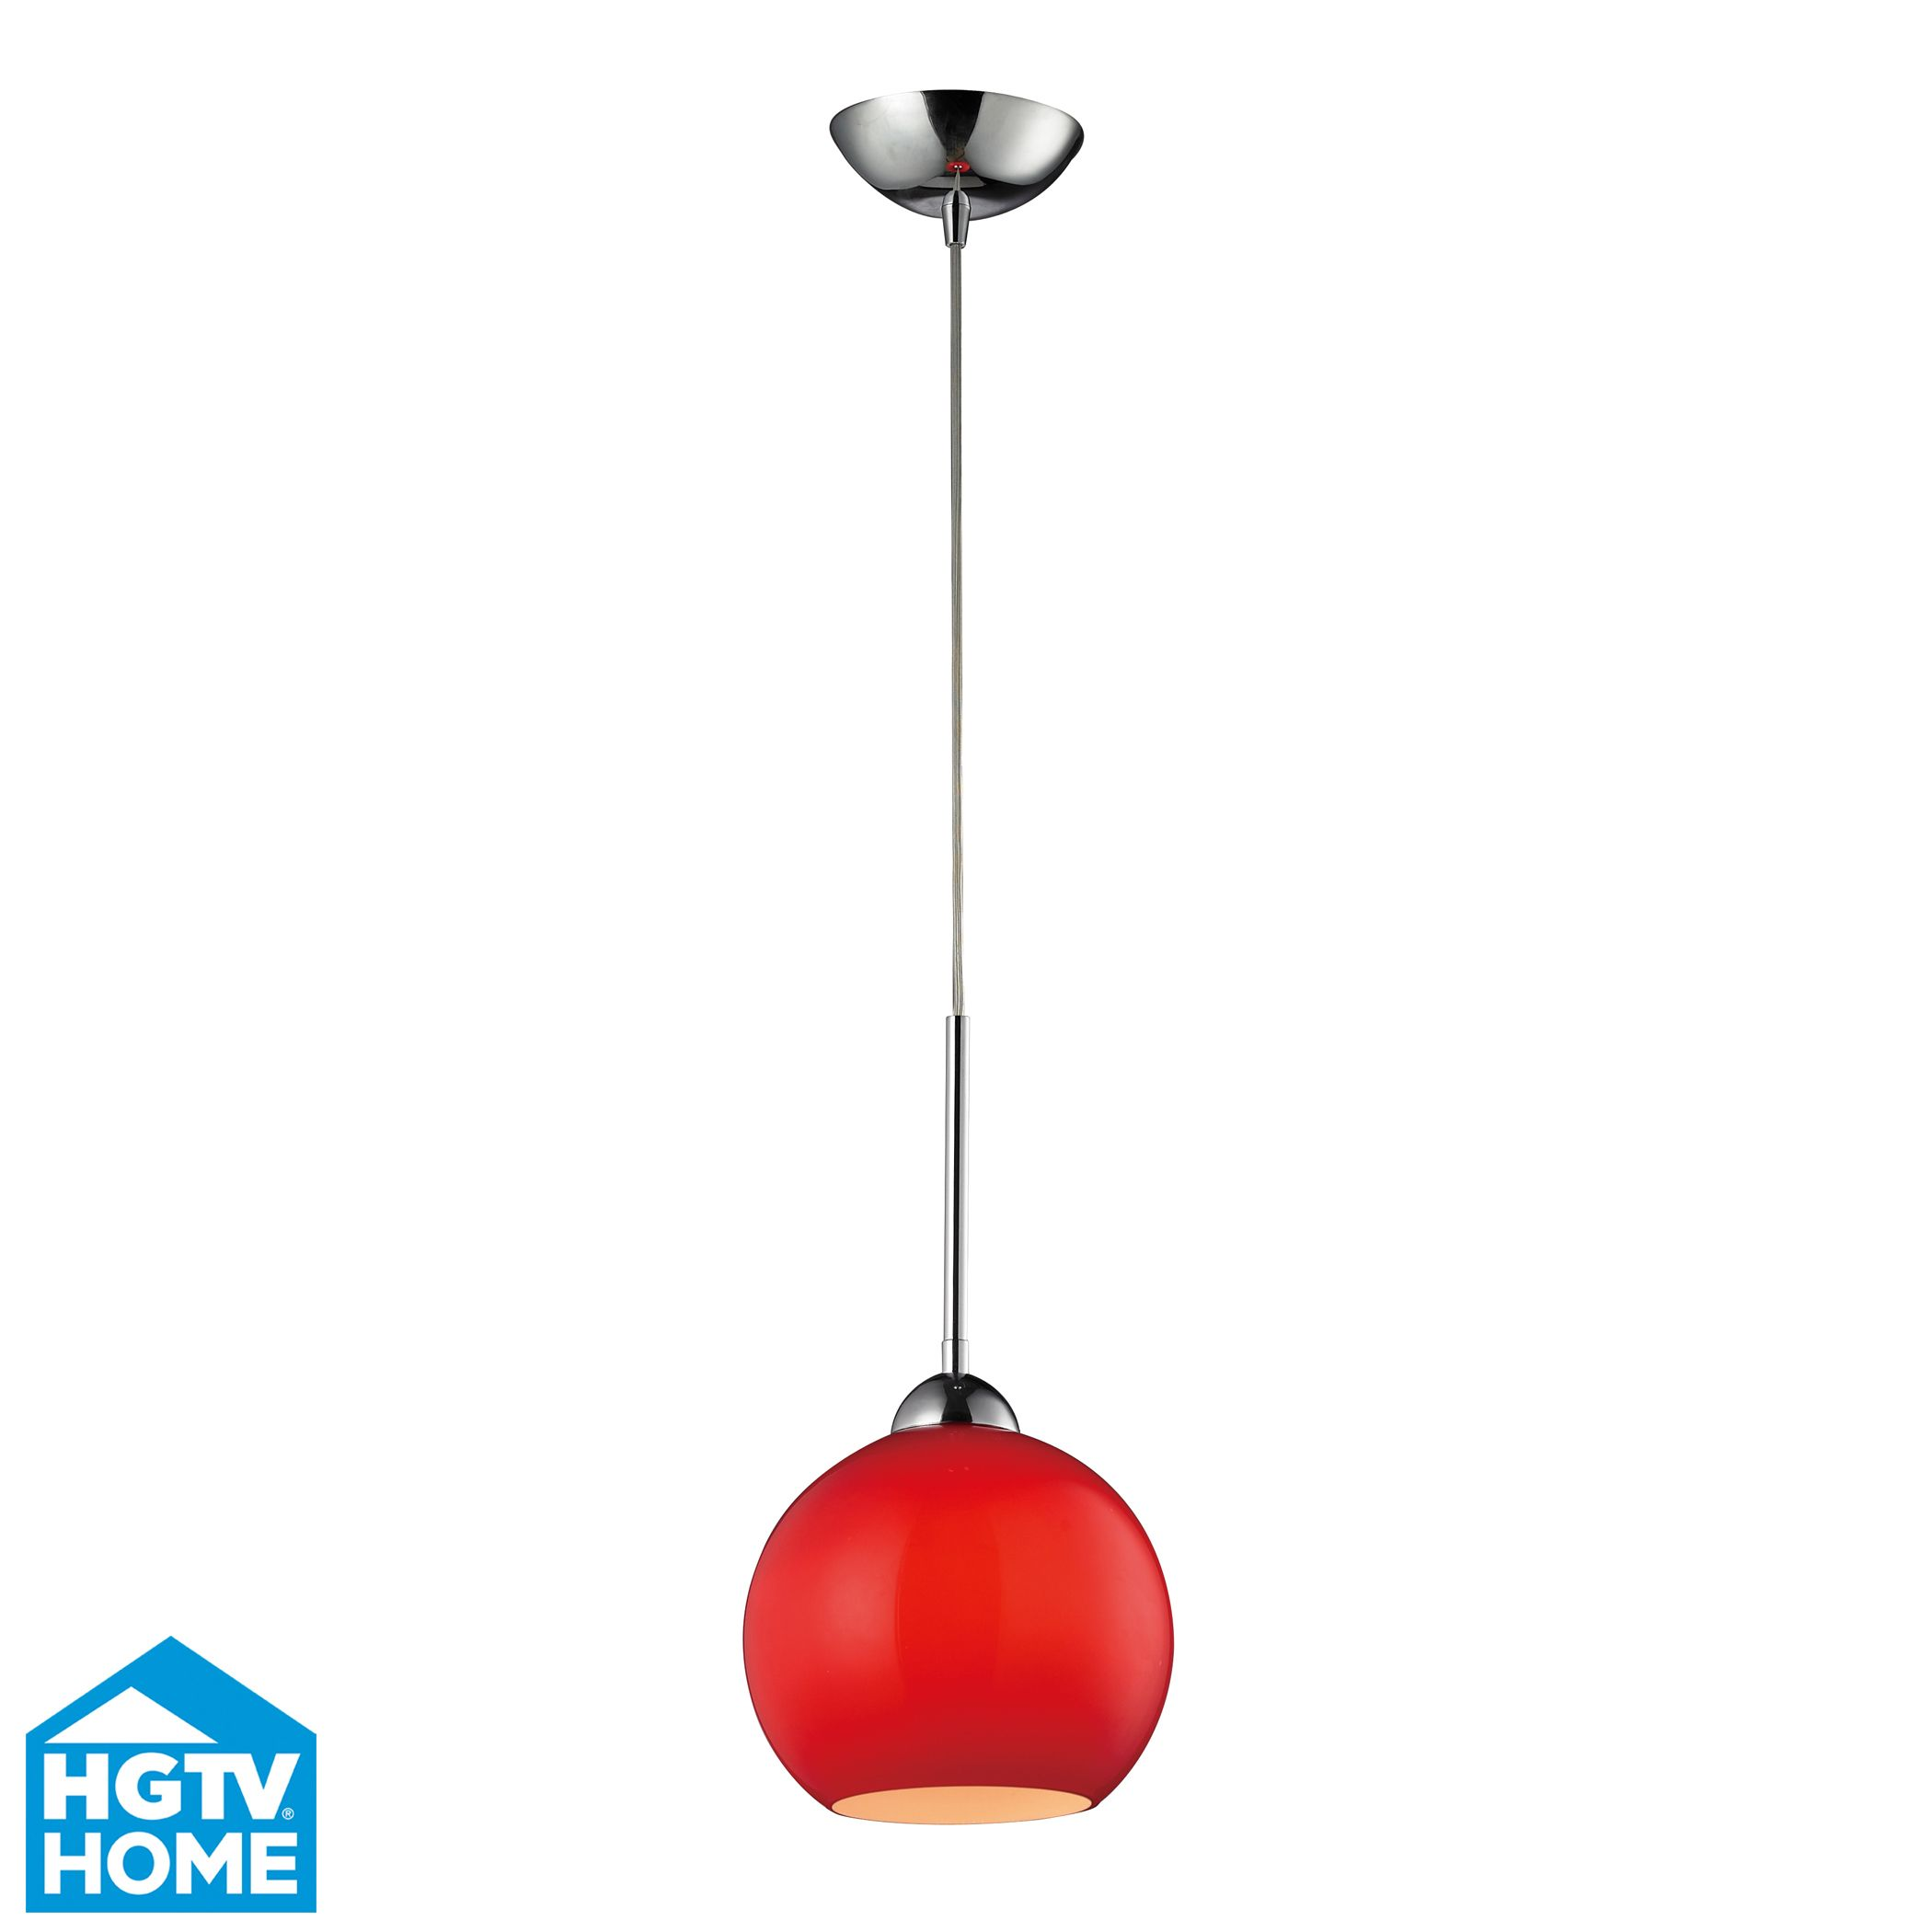 Cassandra light pendant in polished chrome and vermilion glass